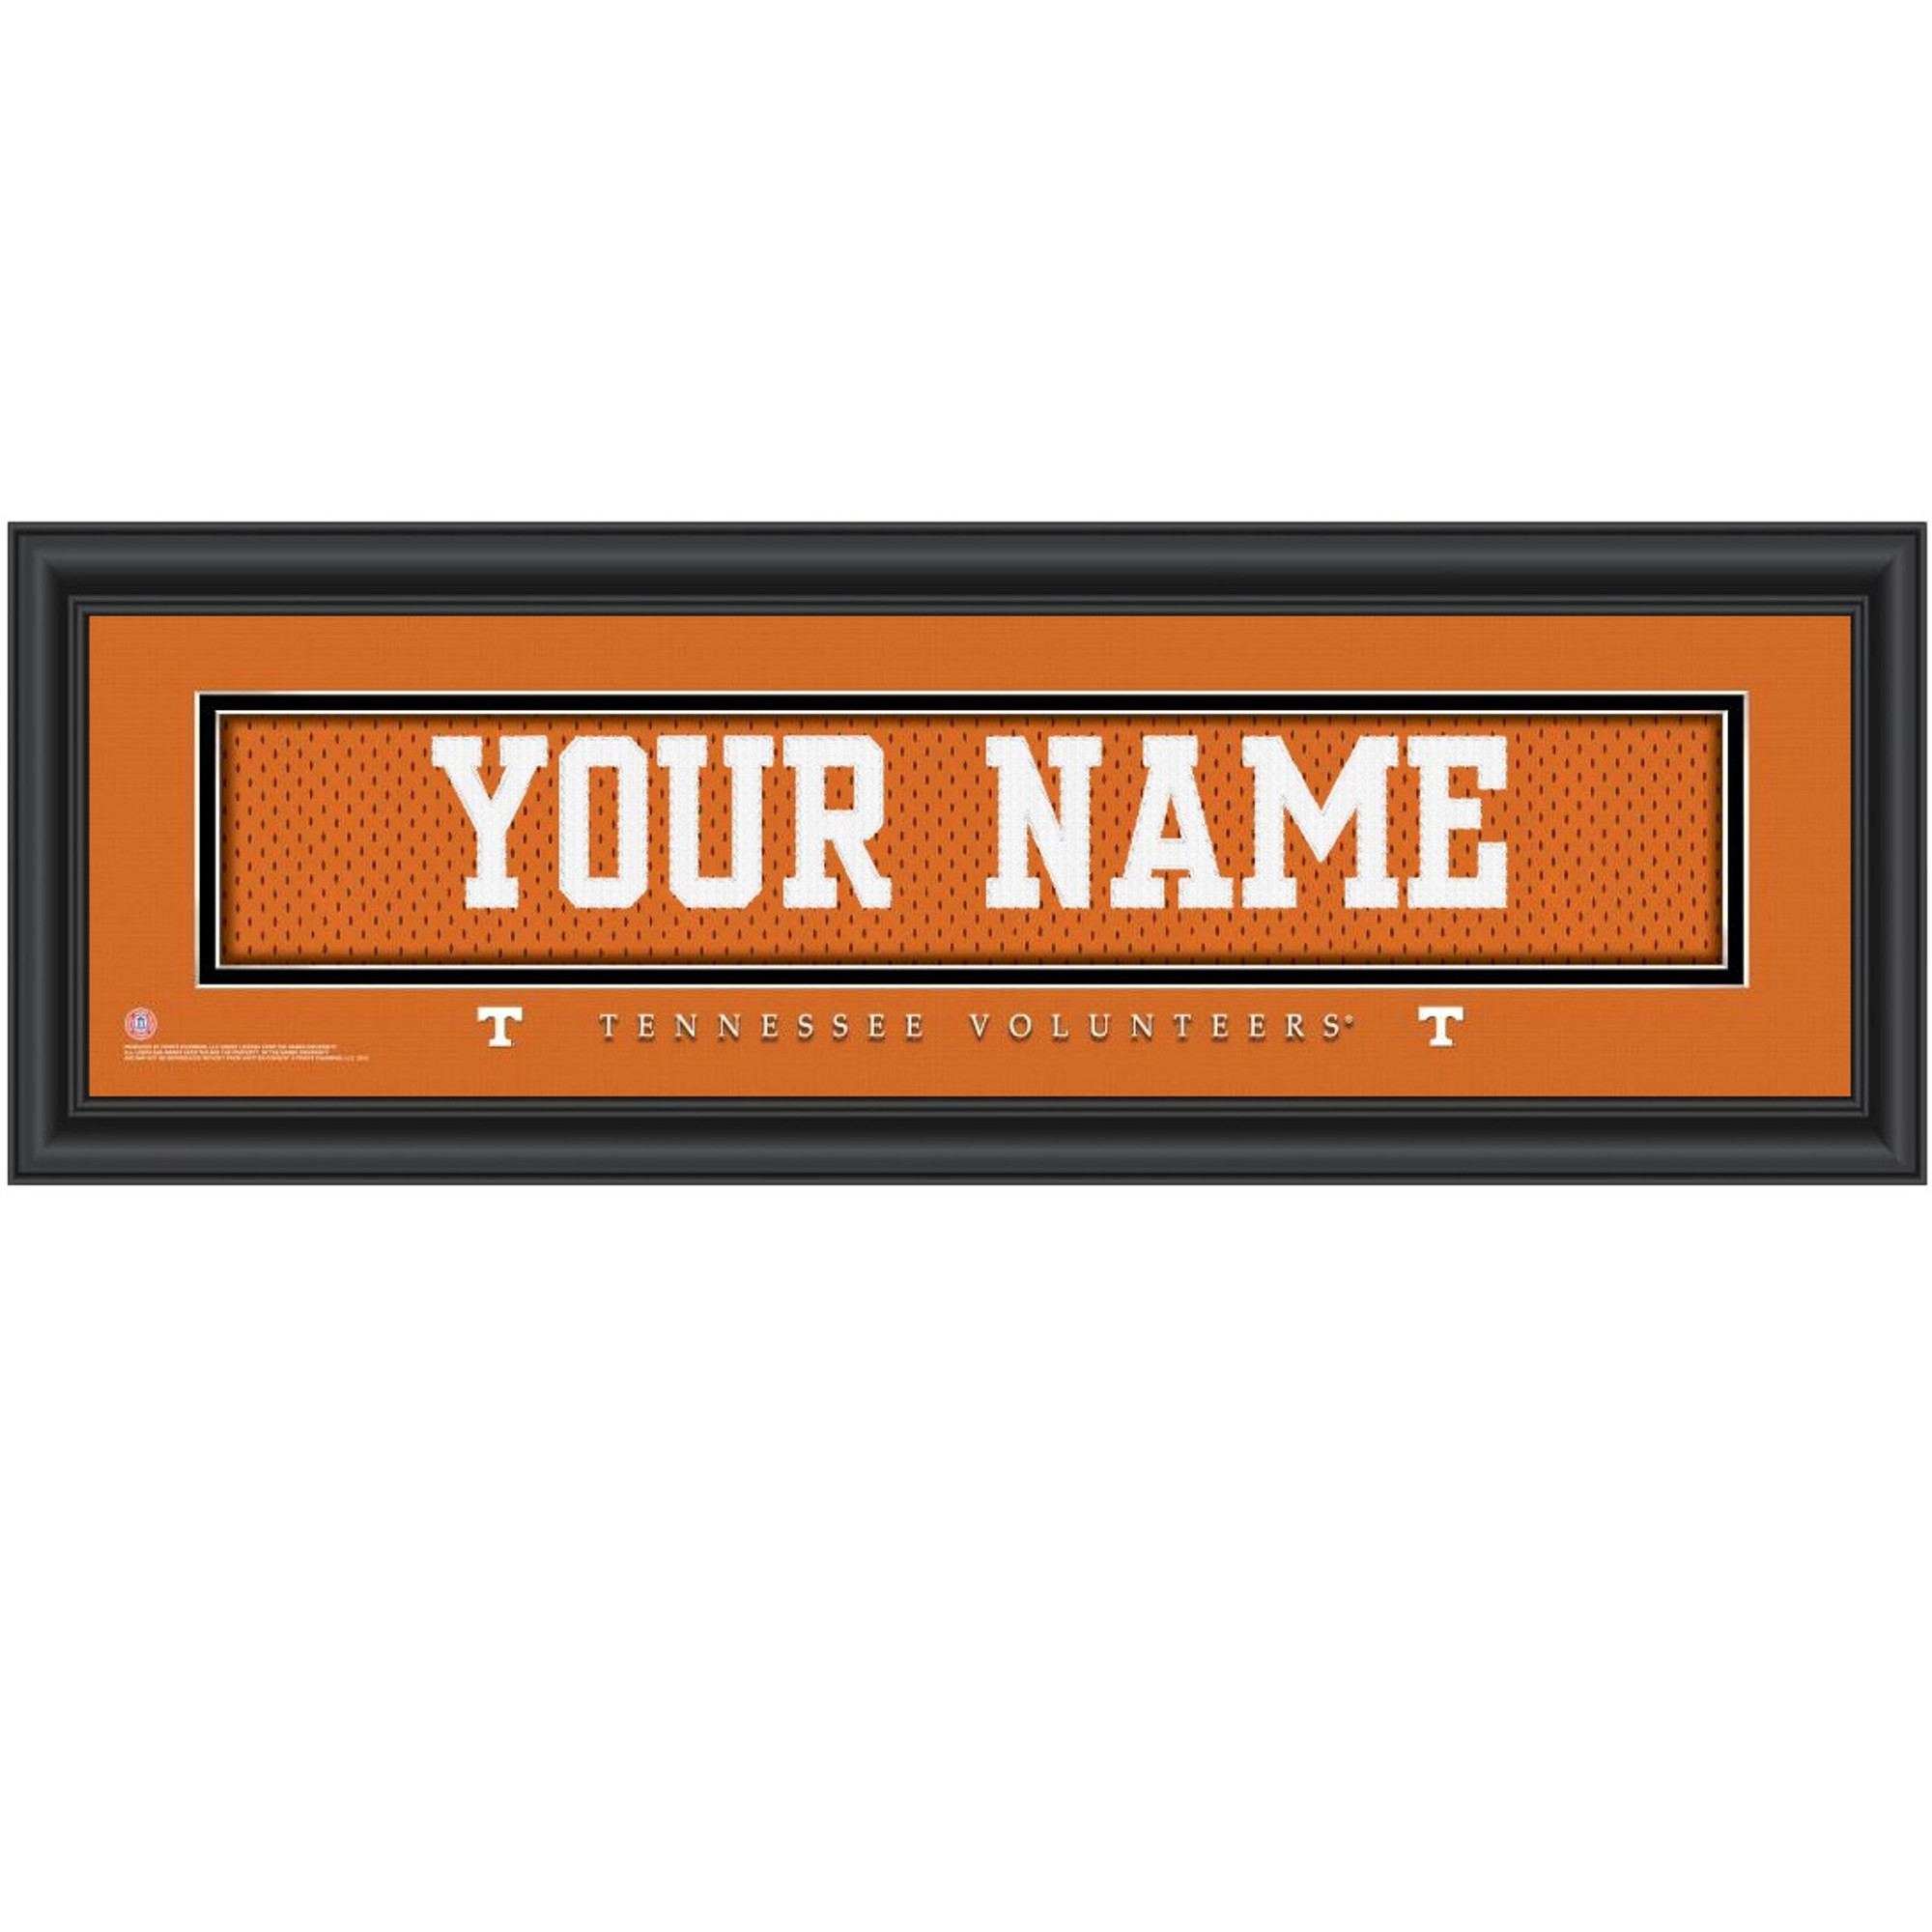 73a9c5e82f3 Tennessee Volunteers Personalized Jersey Stitch Print